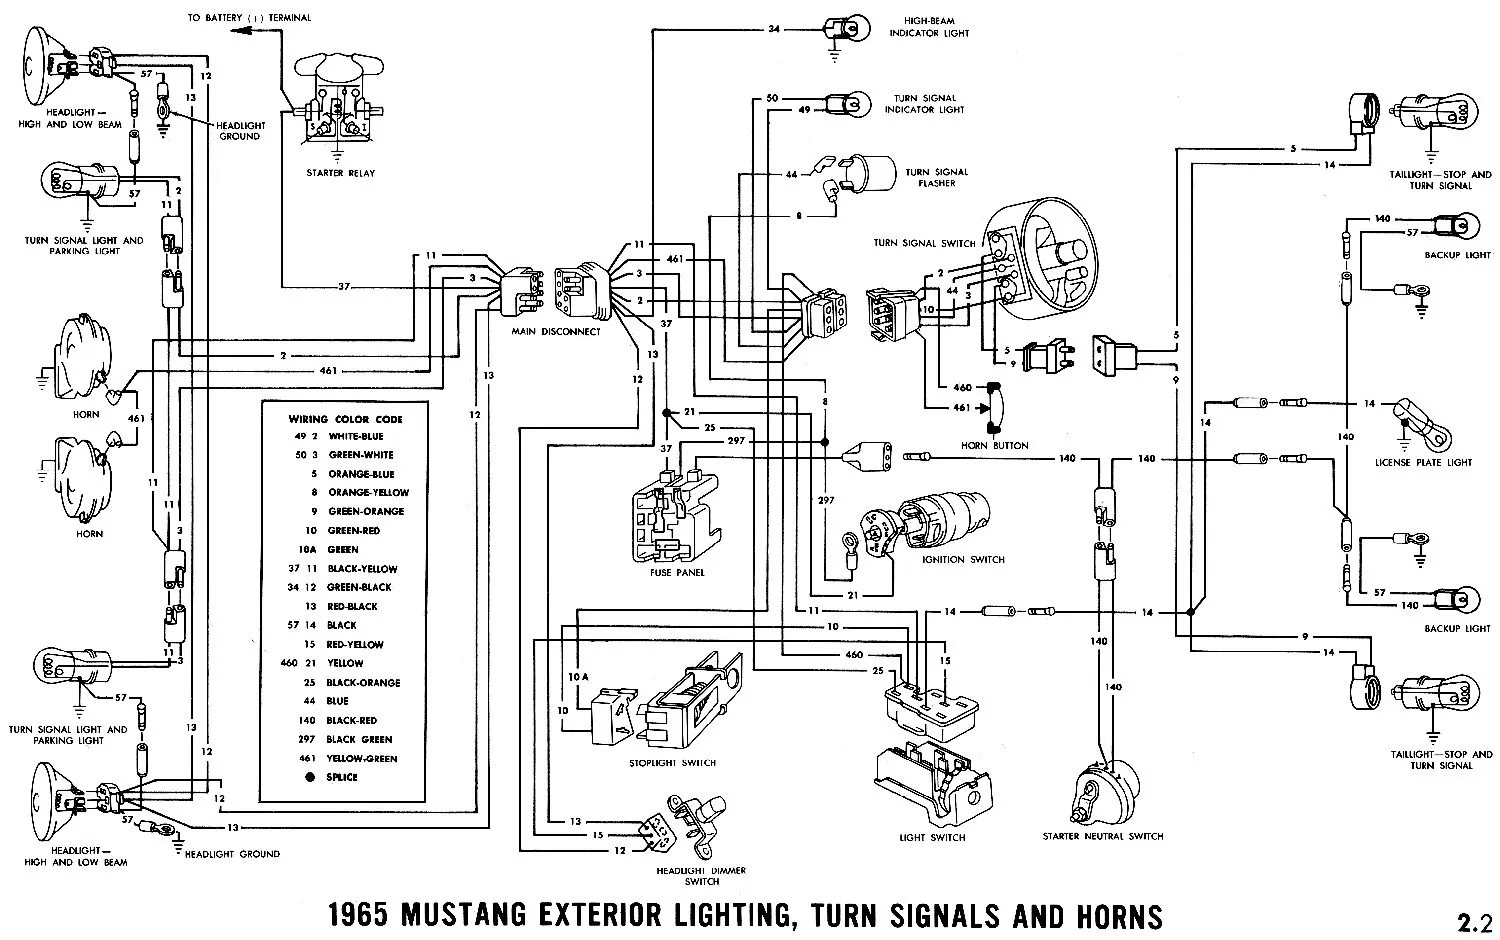 hight resolution of 1965 mustang wiring diagrams average joe restoration 1965 mustang radio wiring diagram 1965 ford mustang wiring